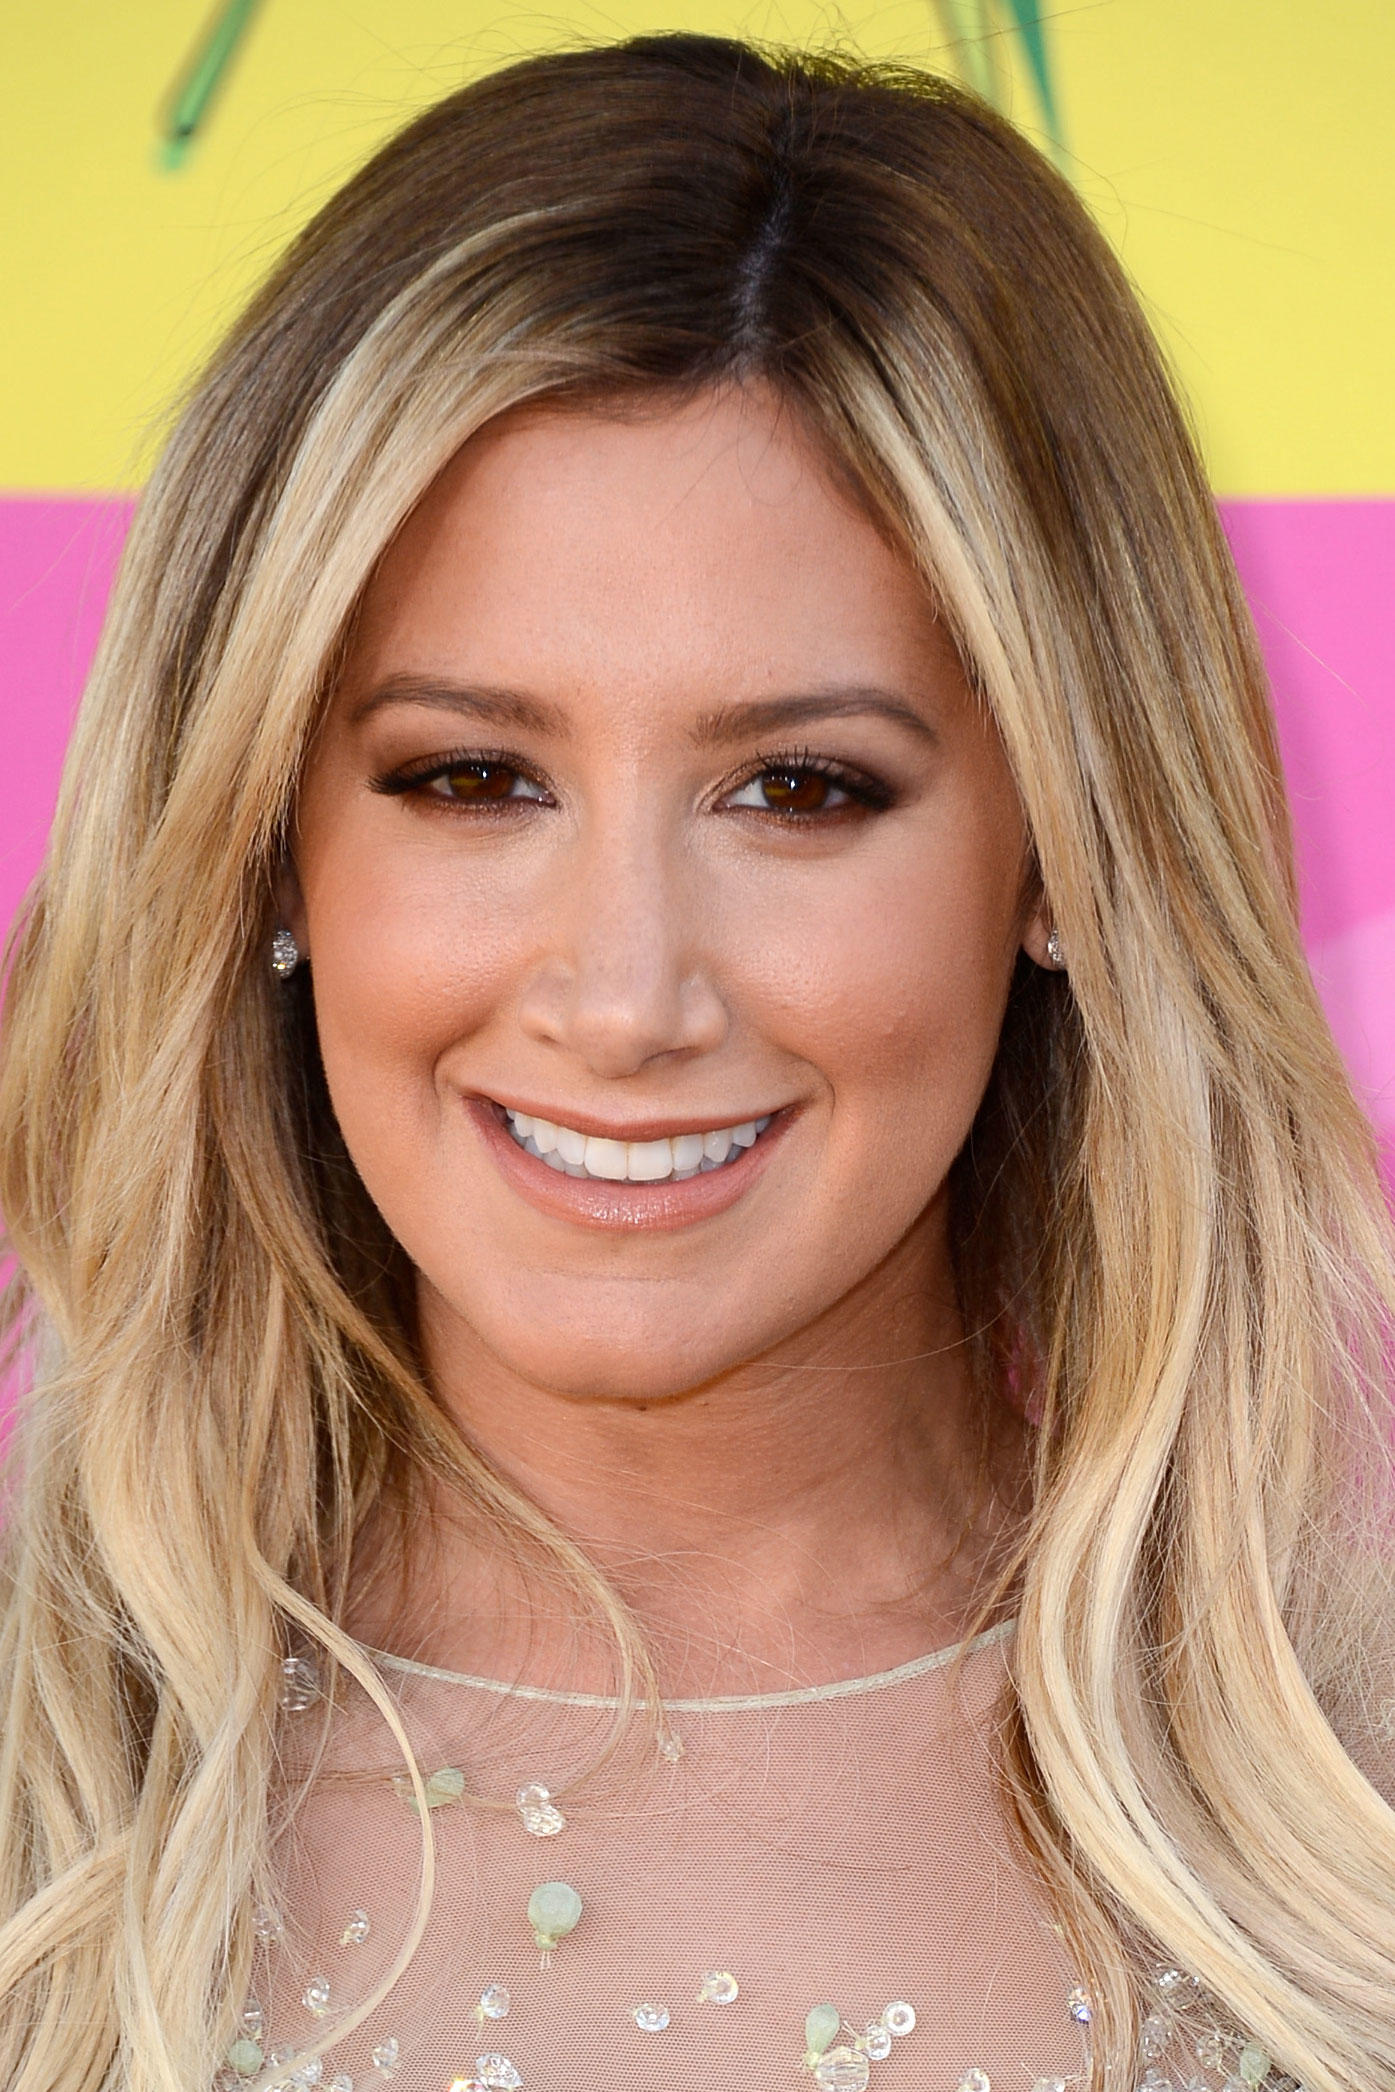 Ashley Tisdale at Nickelodeon's 26th Annual Kids' Choice Awards in L.A.